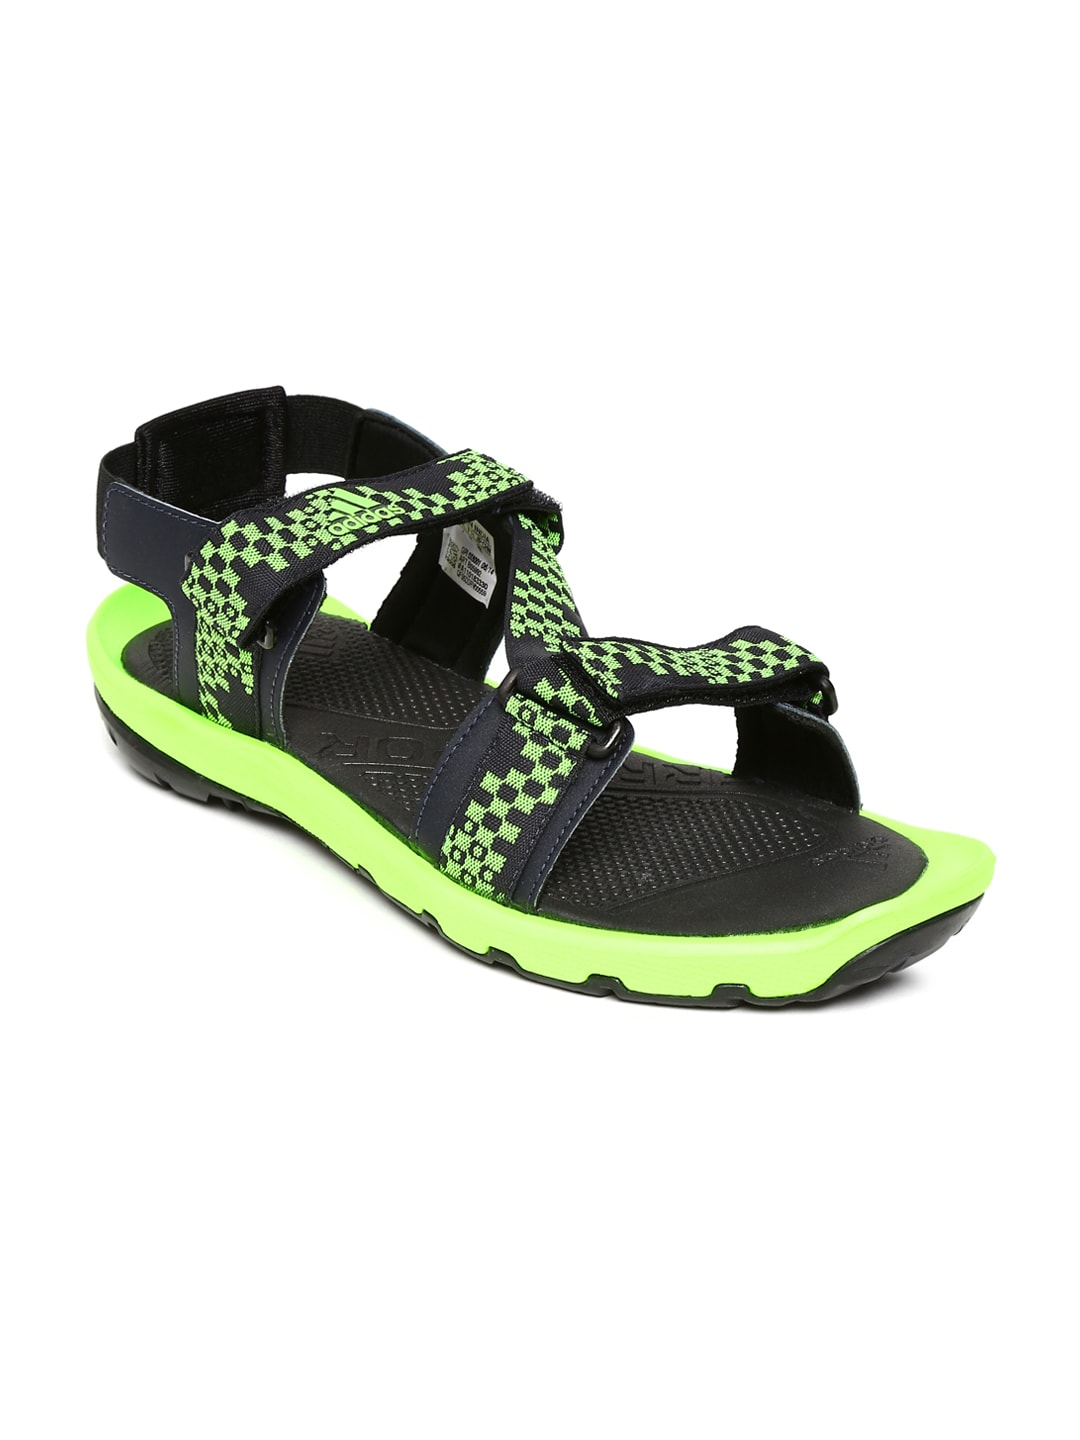 Adidas Adidas Men Grey And Fluorescent Green Kerio Lite Sports Sandals (Multicolor)